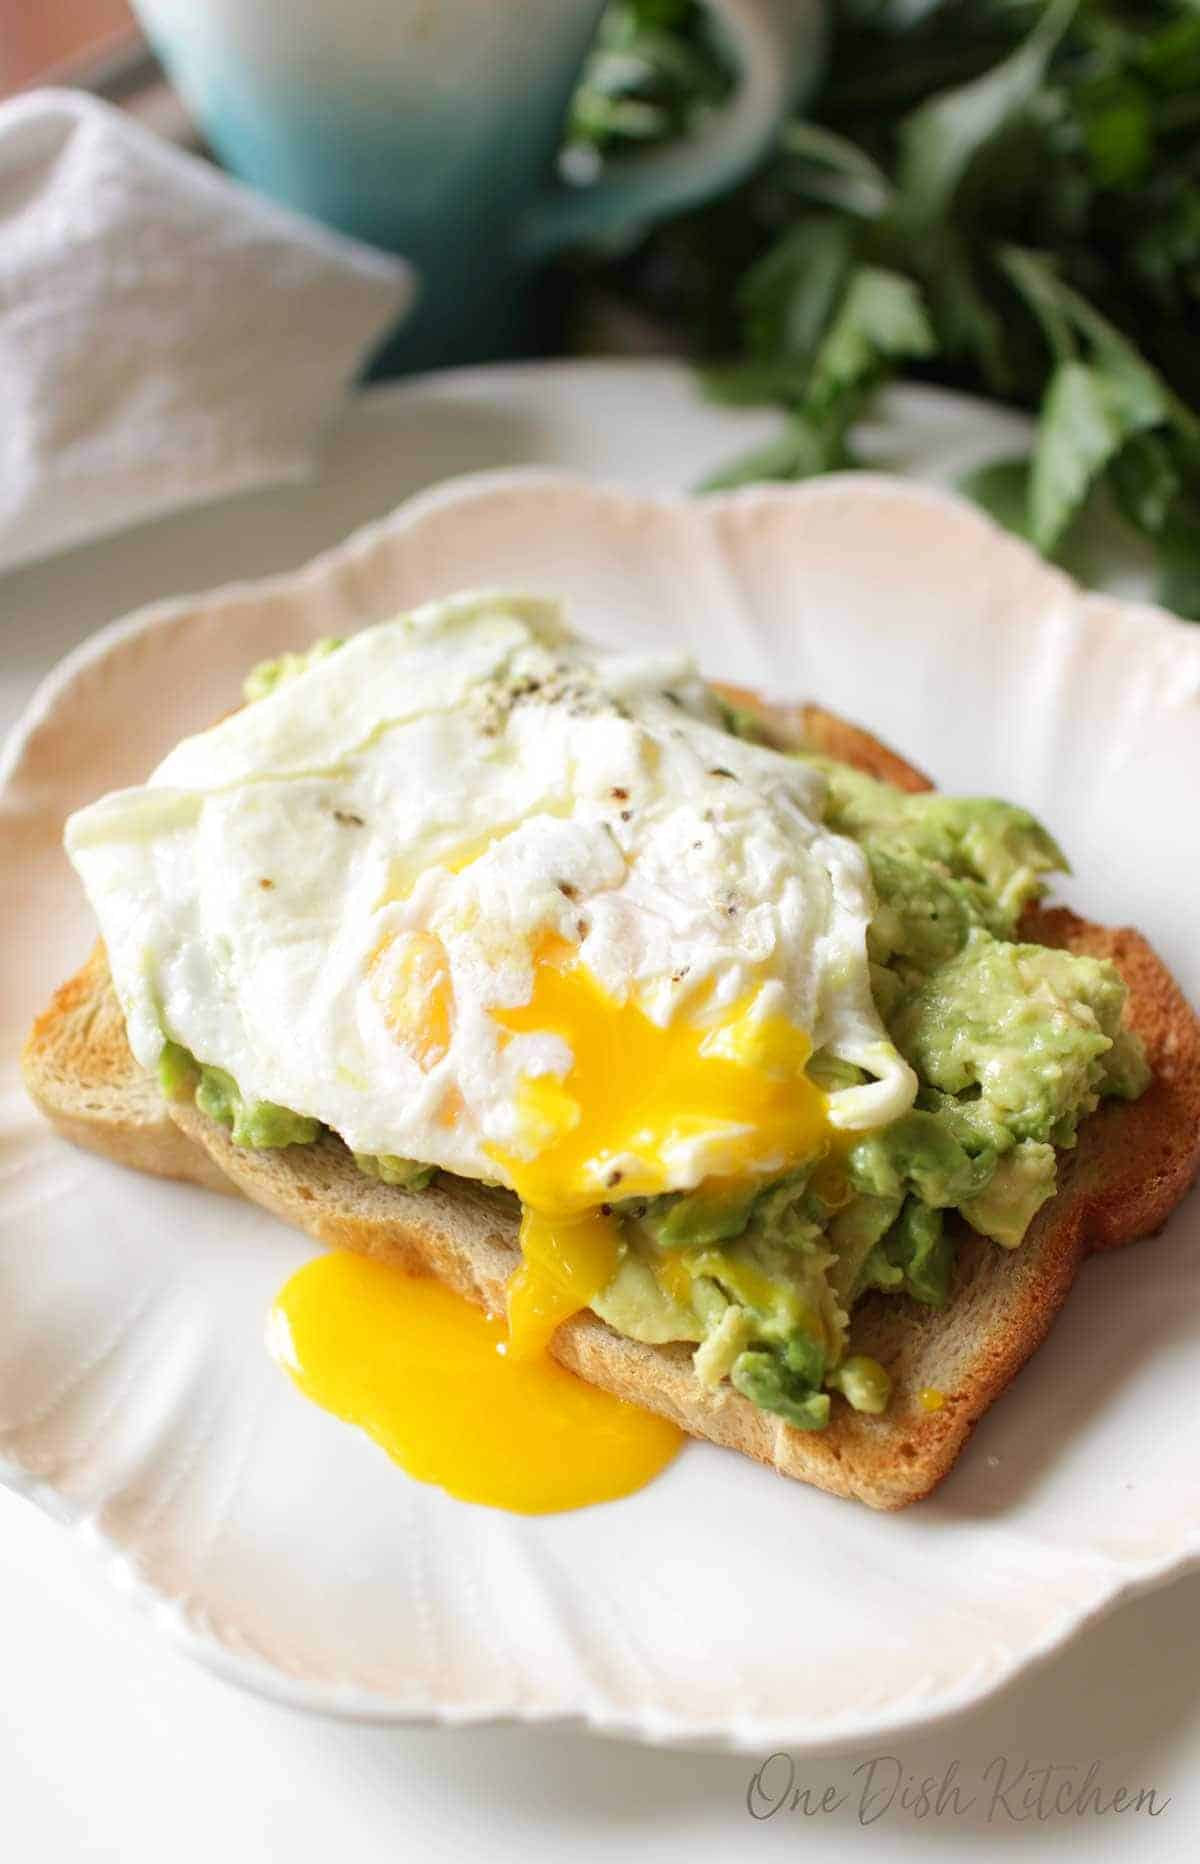 Avocado toast with a runny egg on top on a plate